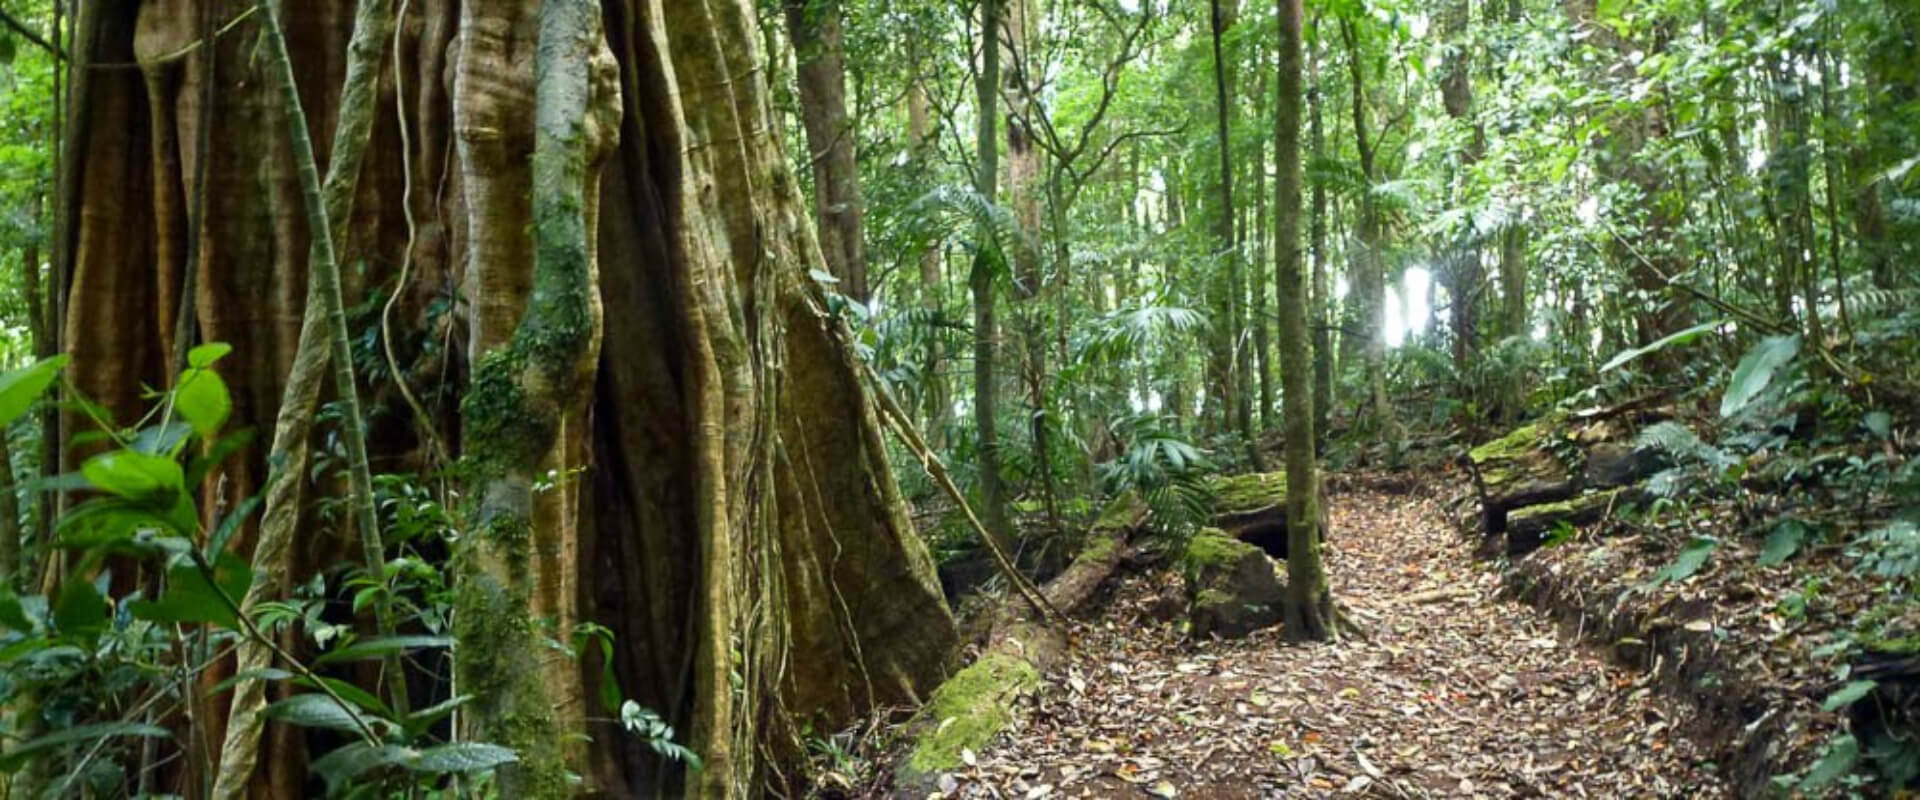 Curicancha Natural History Tour | Costa Rica Jade Tours